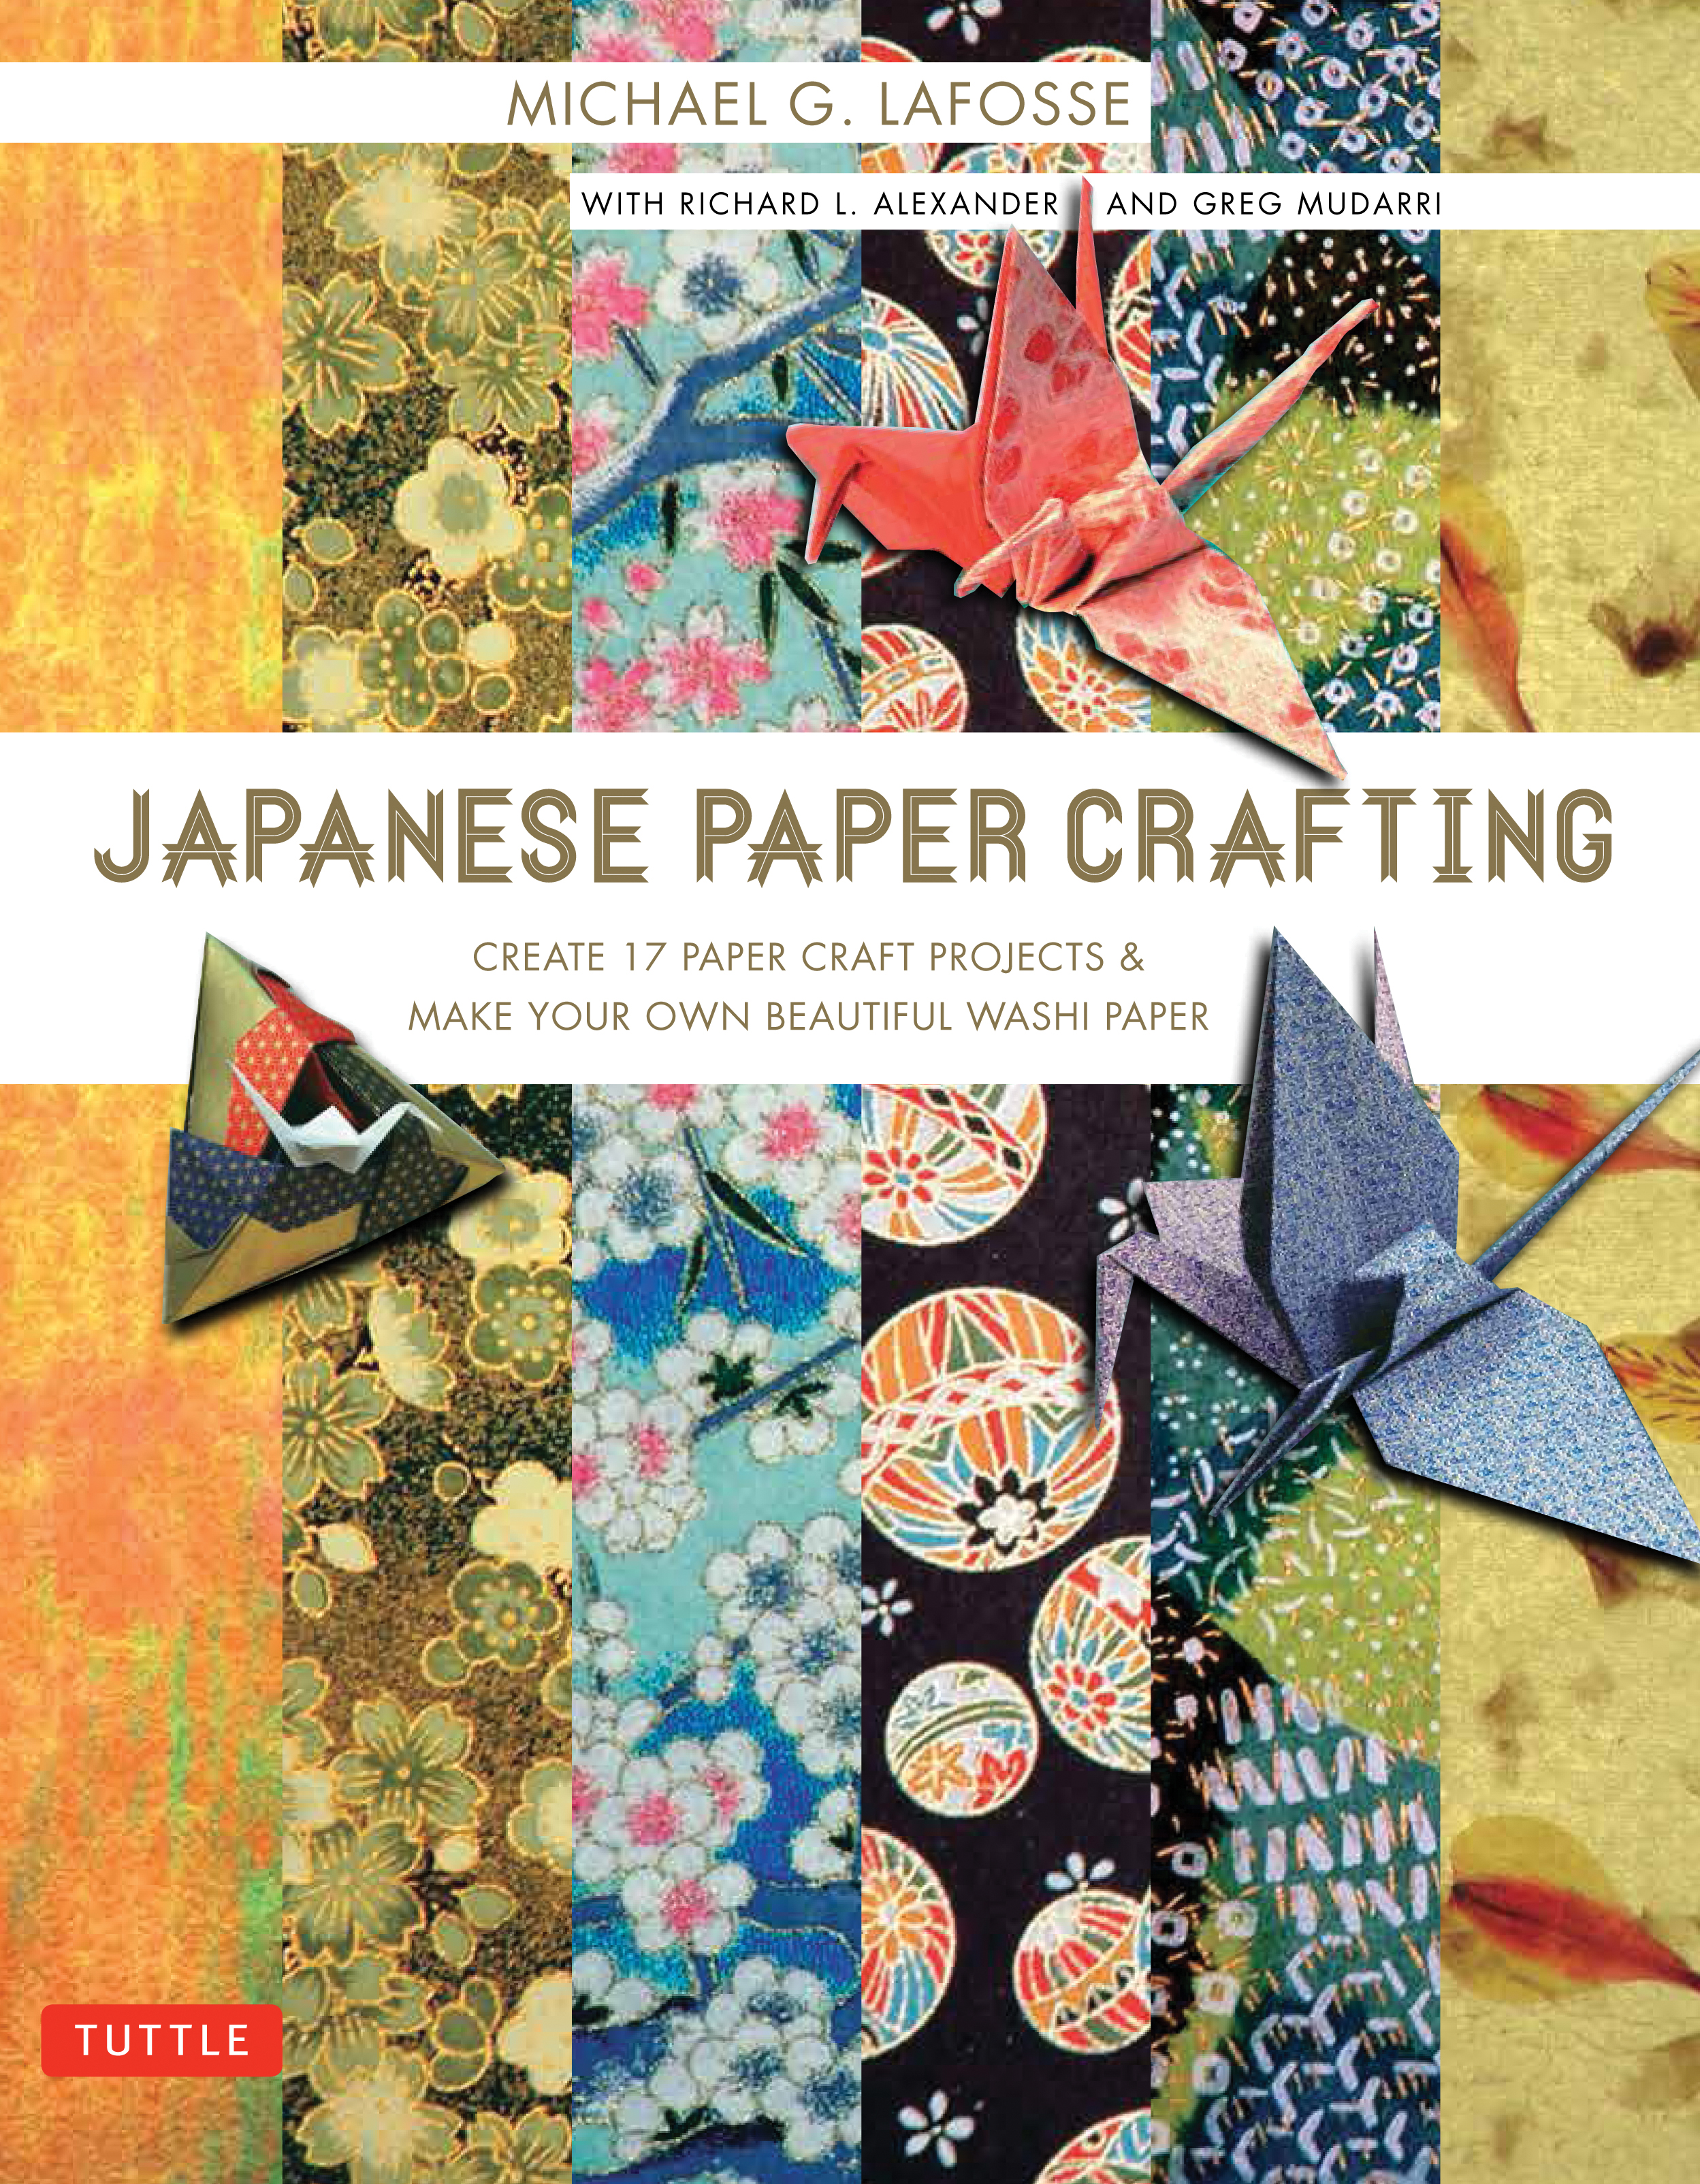 Japanese-paper-crafting-9784805312926_hr